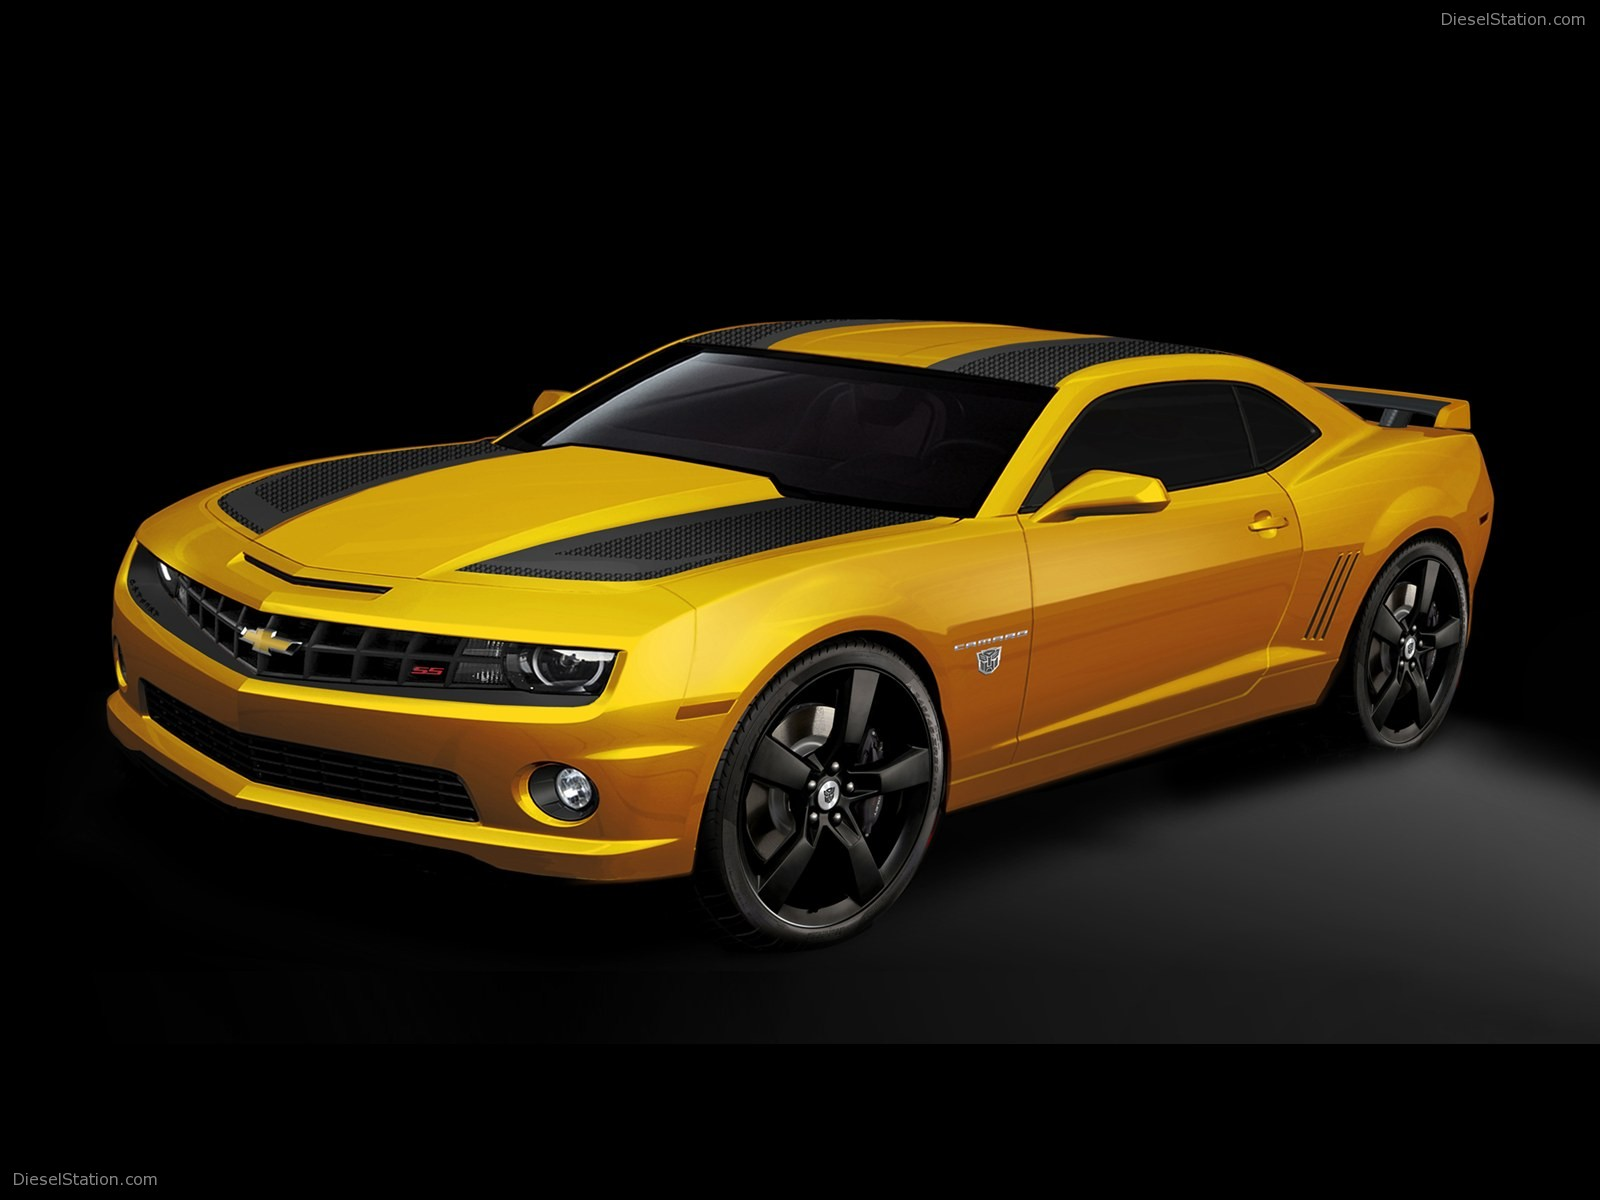 Chevy Camaro Wallpaper 4881 Hd Wallpapers in Cars   Imagescicom 1600x1200